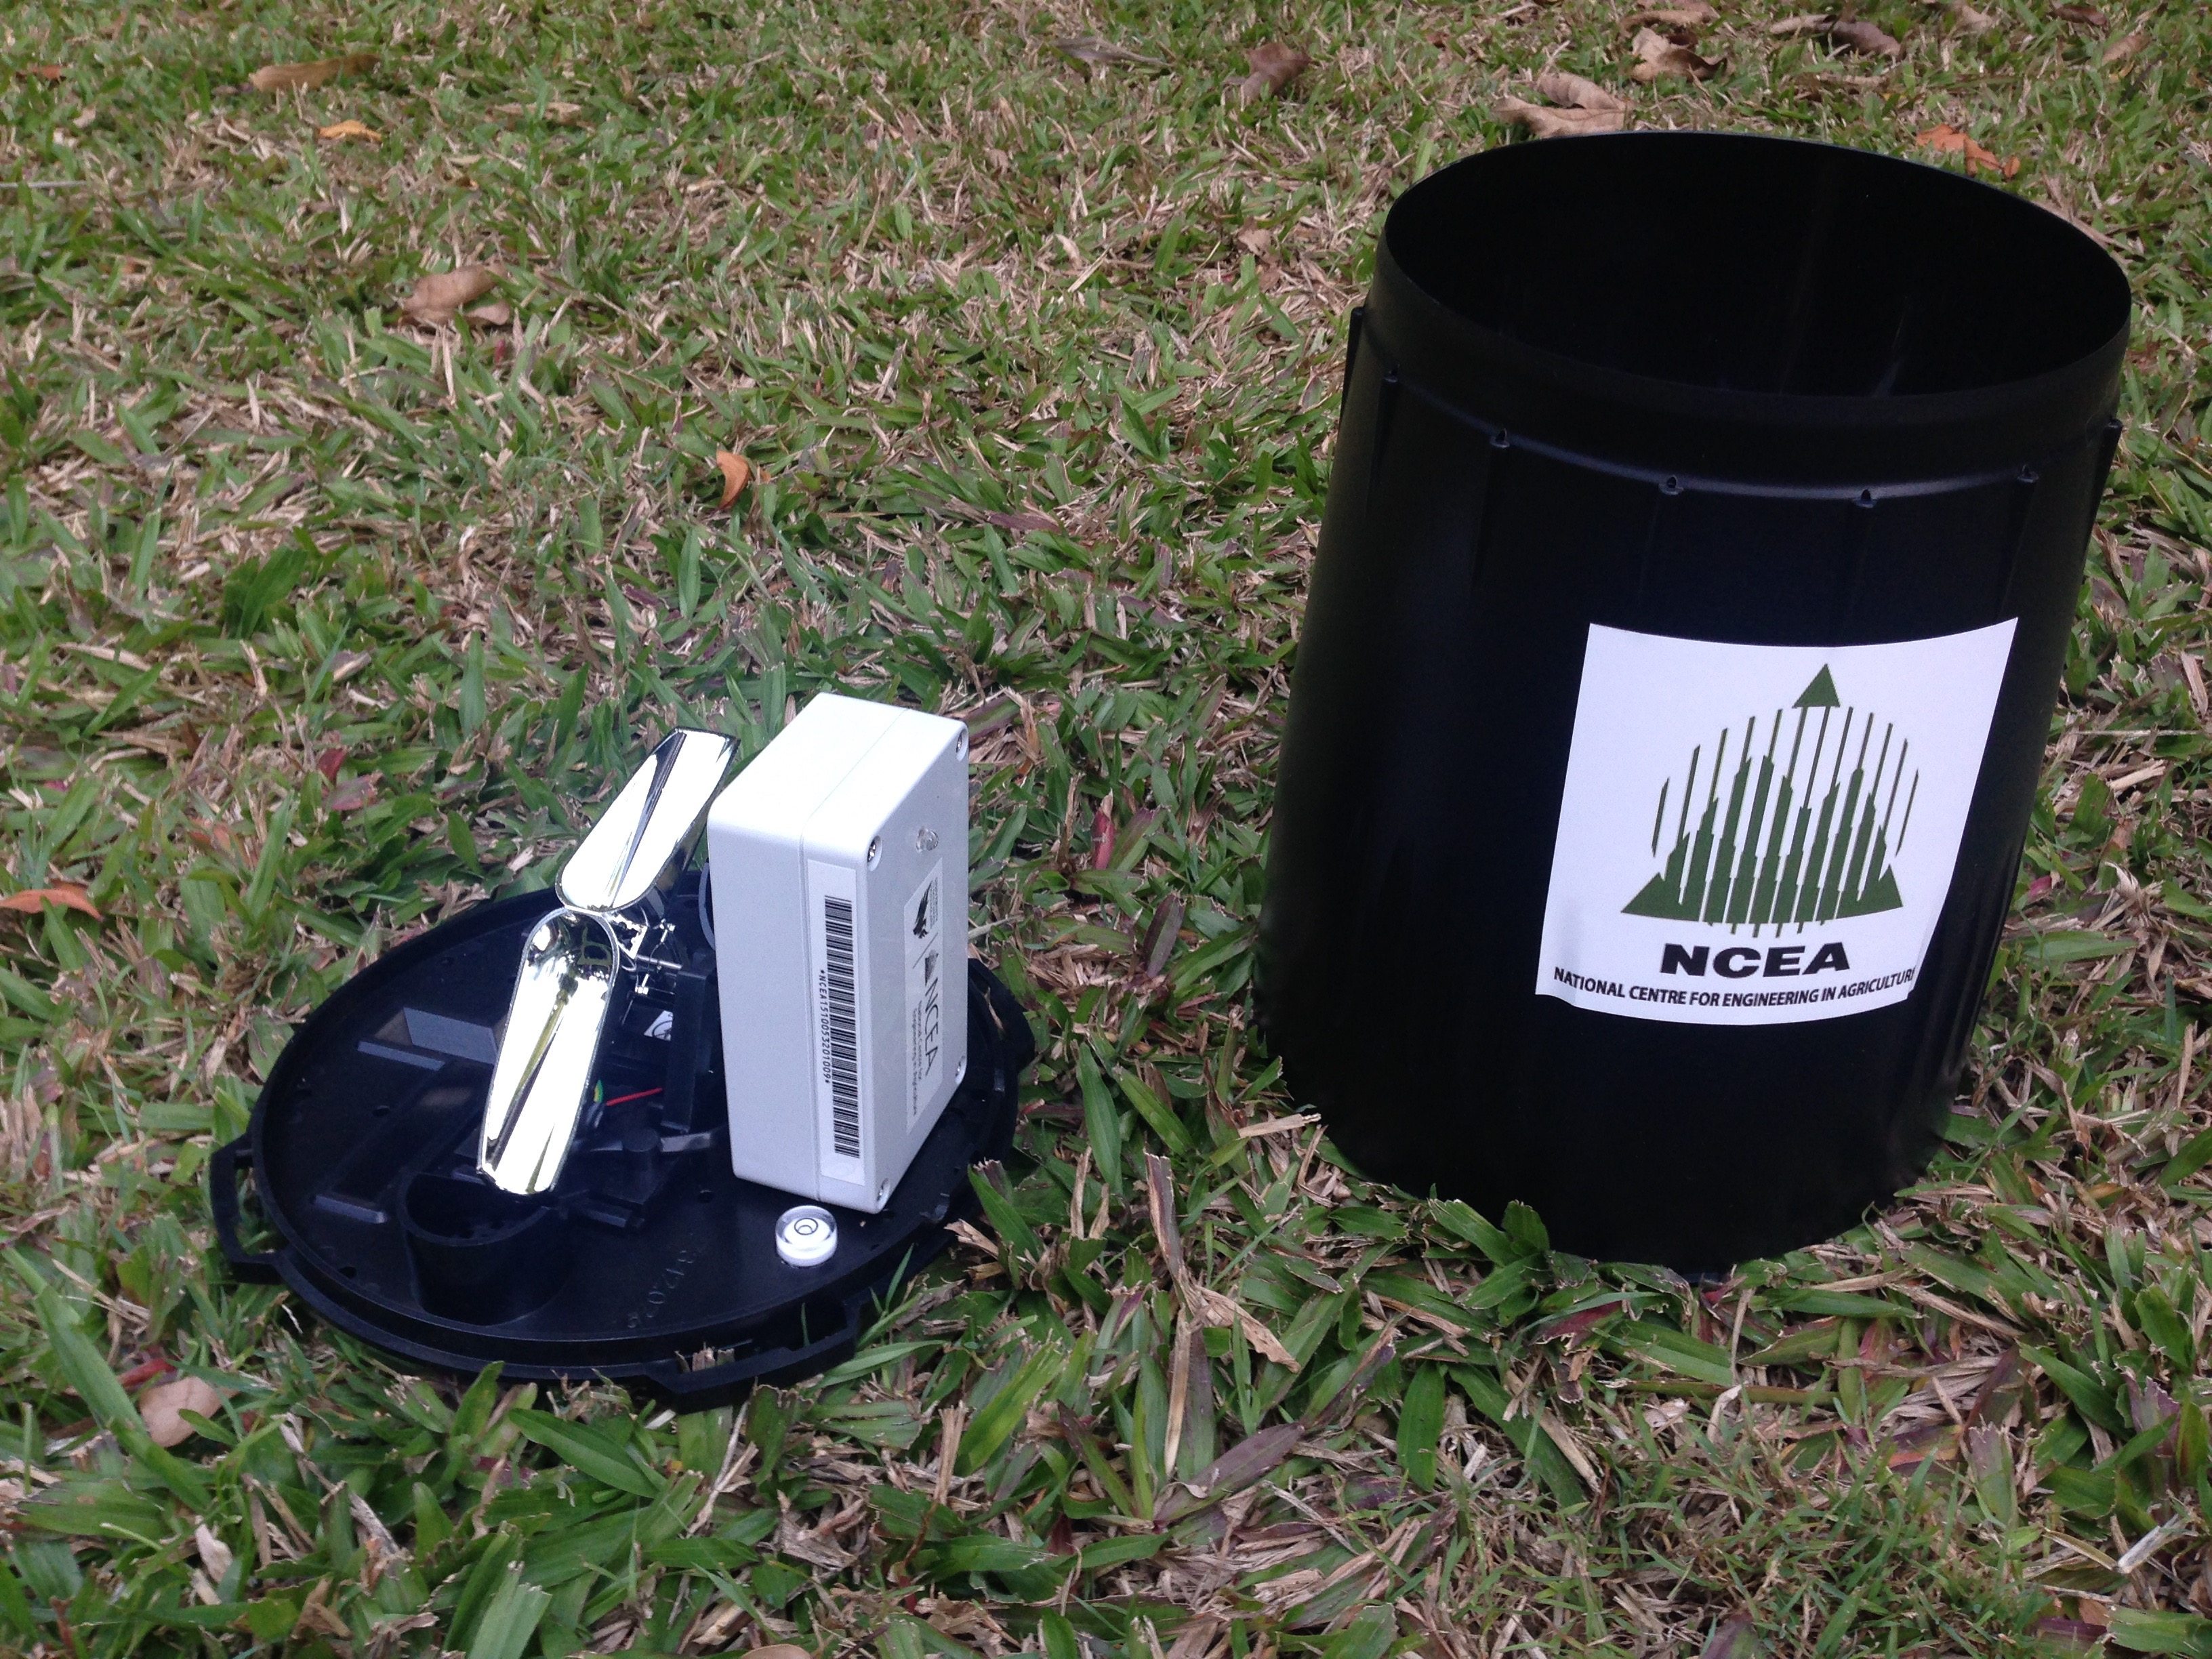 Wireless rain gauge developed for SWApp